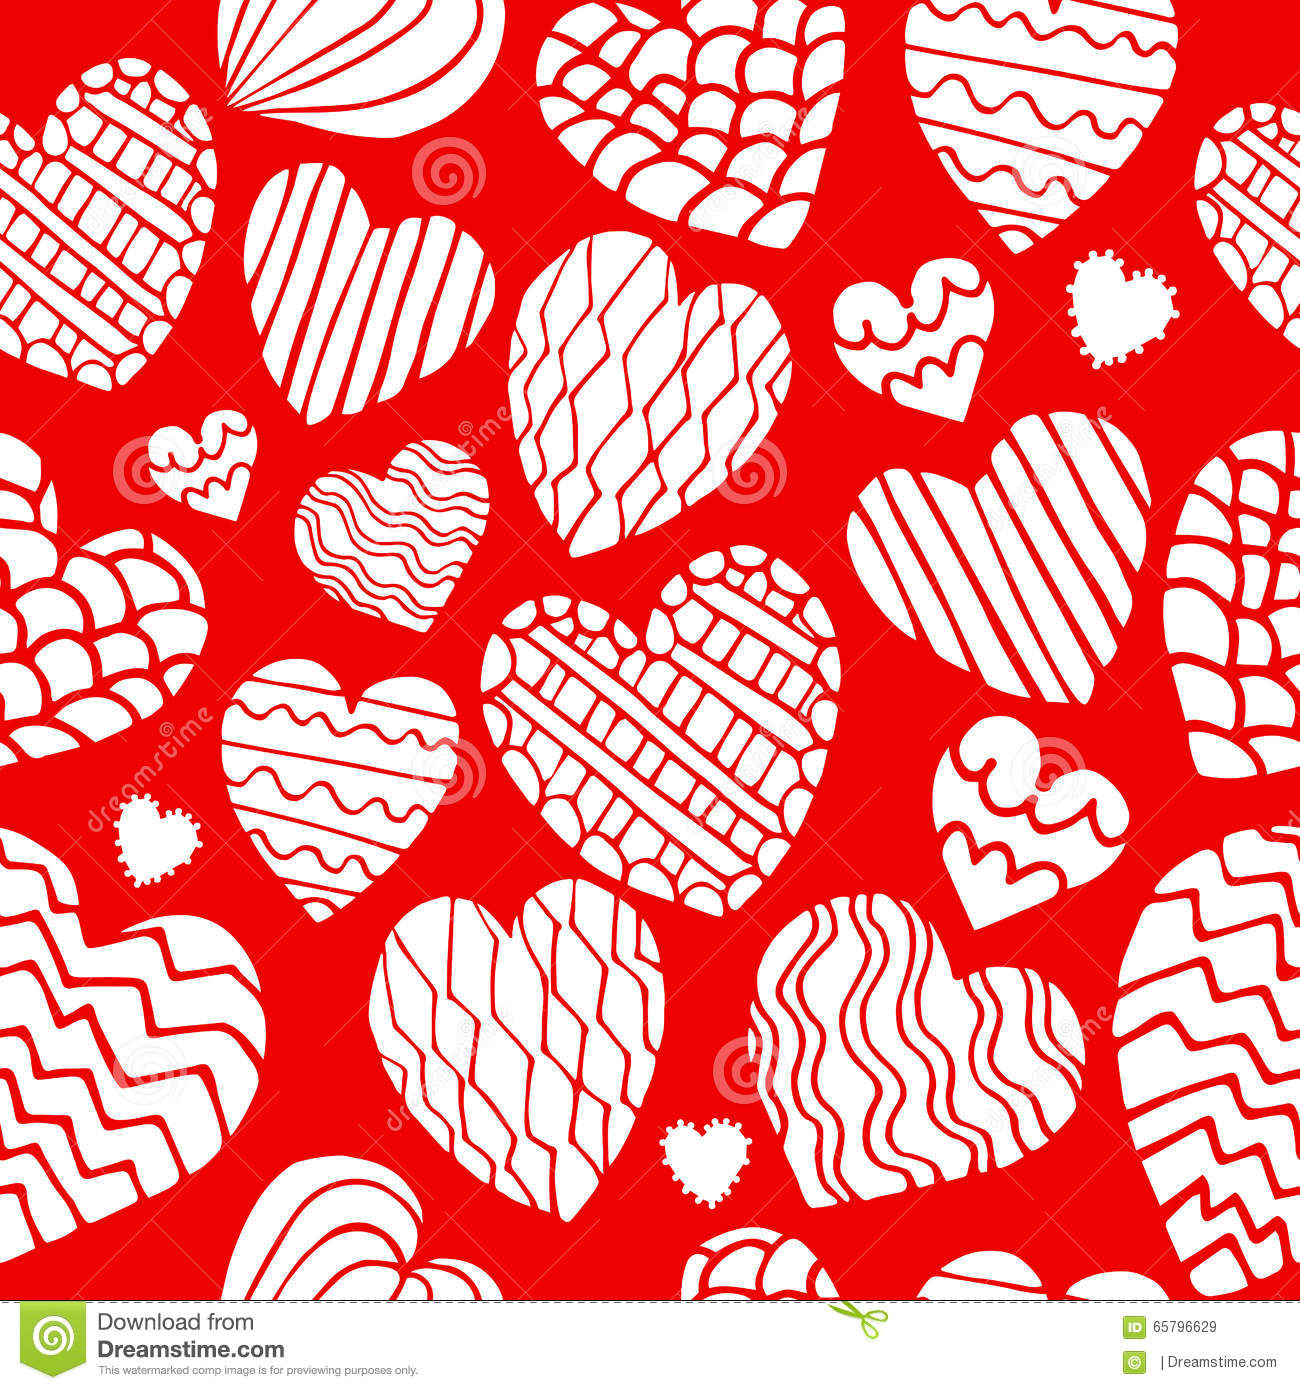 Cute Doodle Heart Seamless Pattern. Stock Vector - Illustration of ...